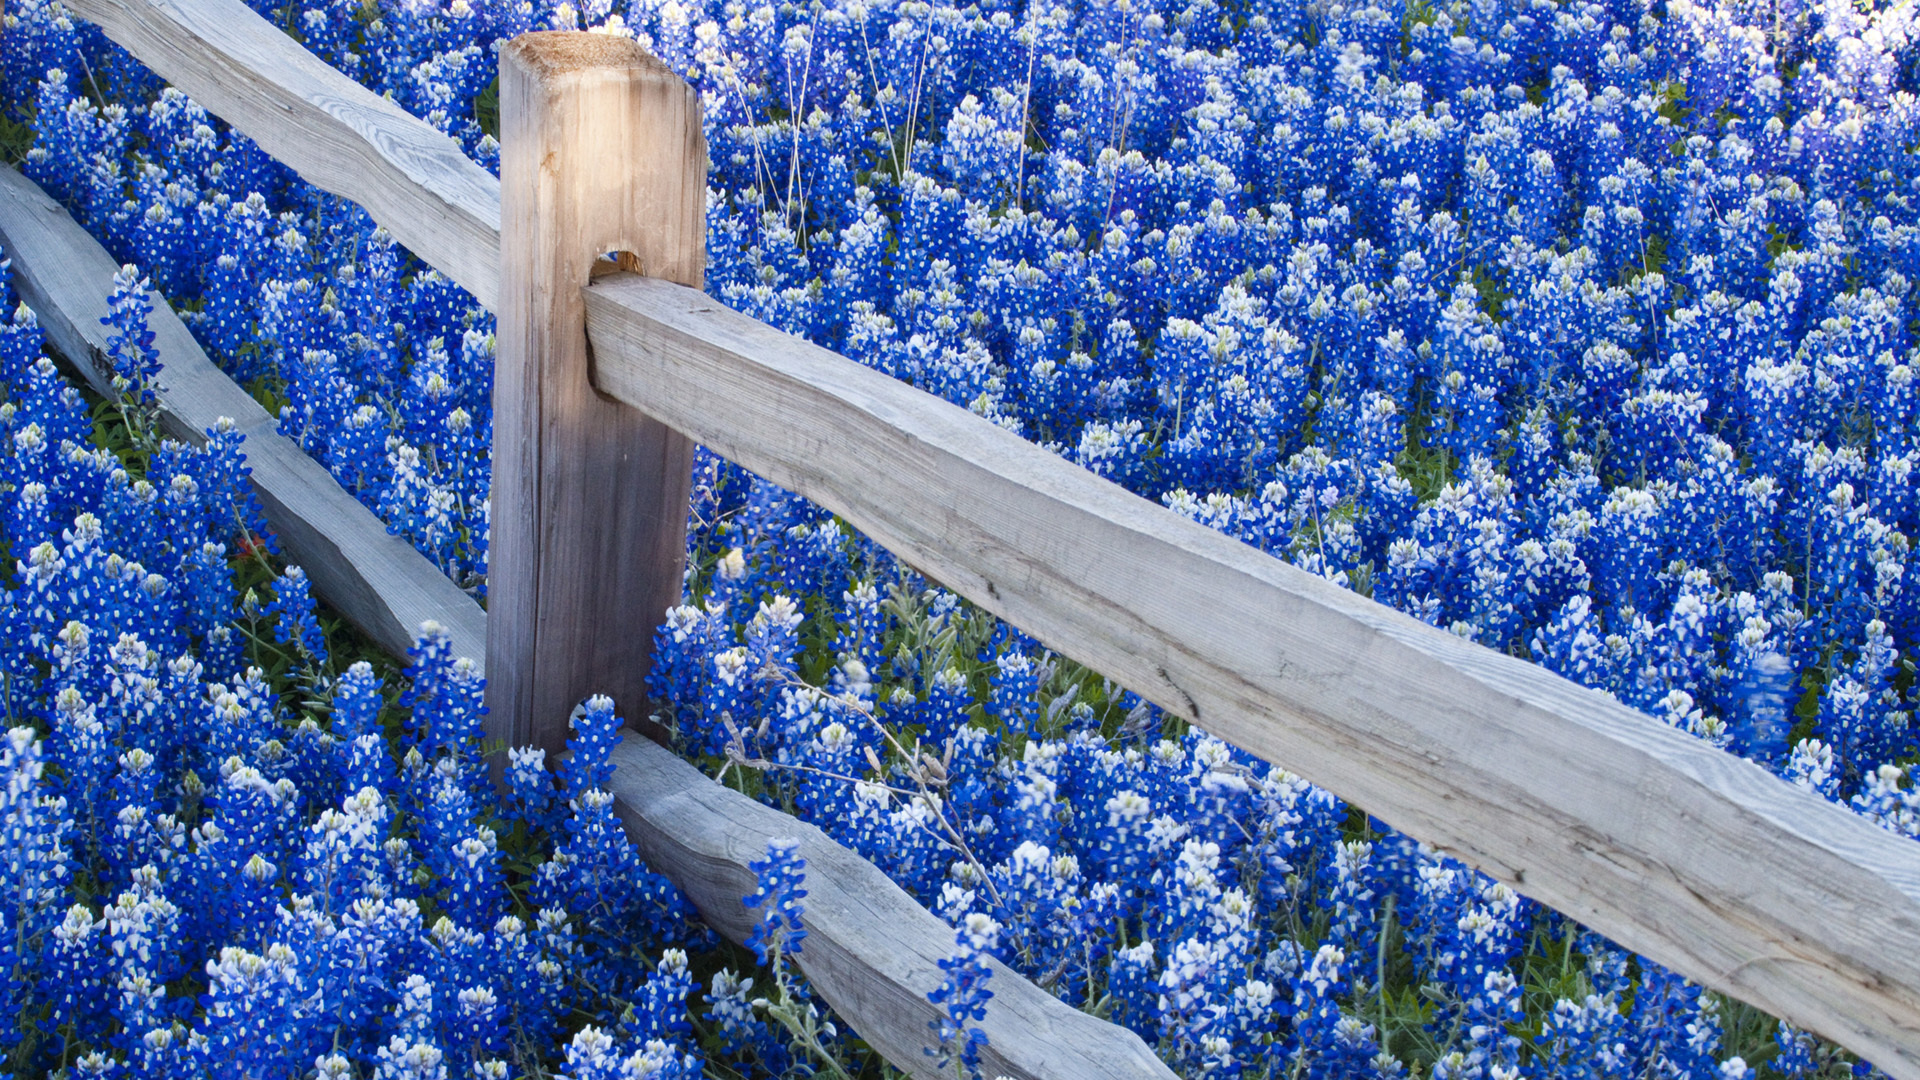 texas bluebonnets full hd wallpaper and background image | 1920x1080